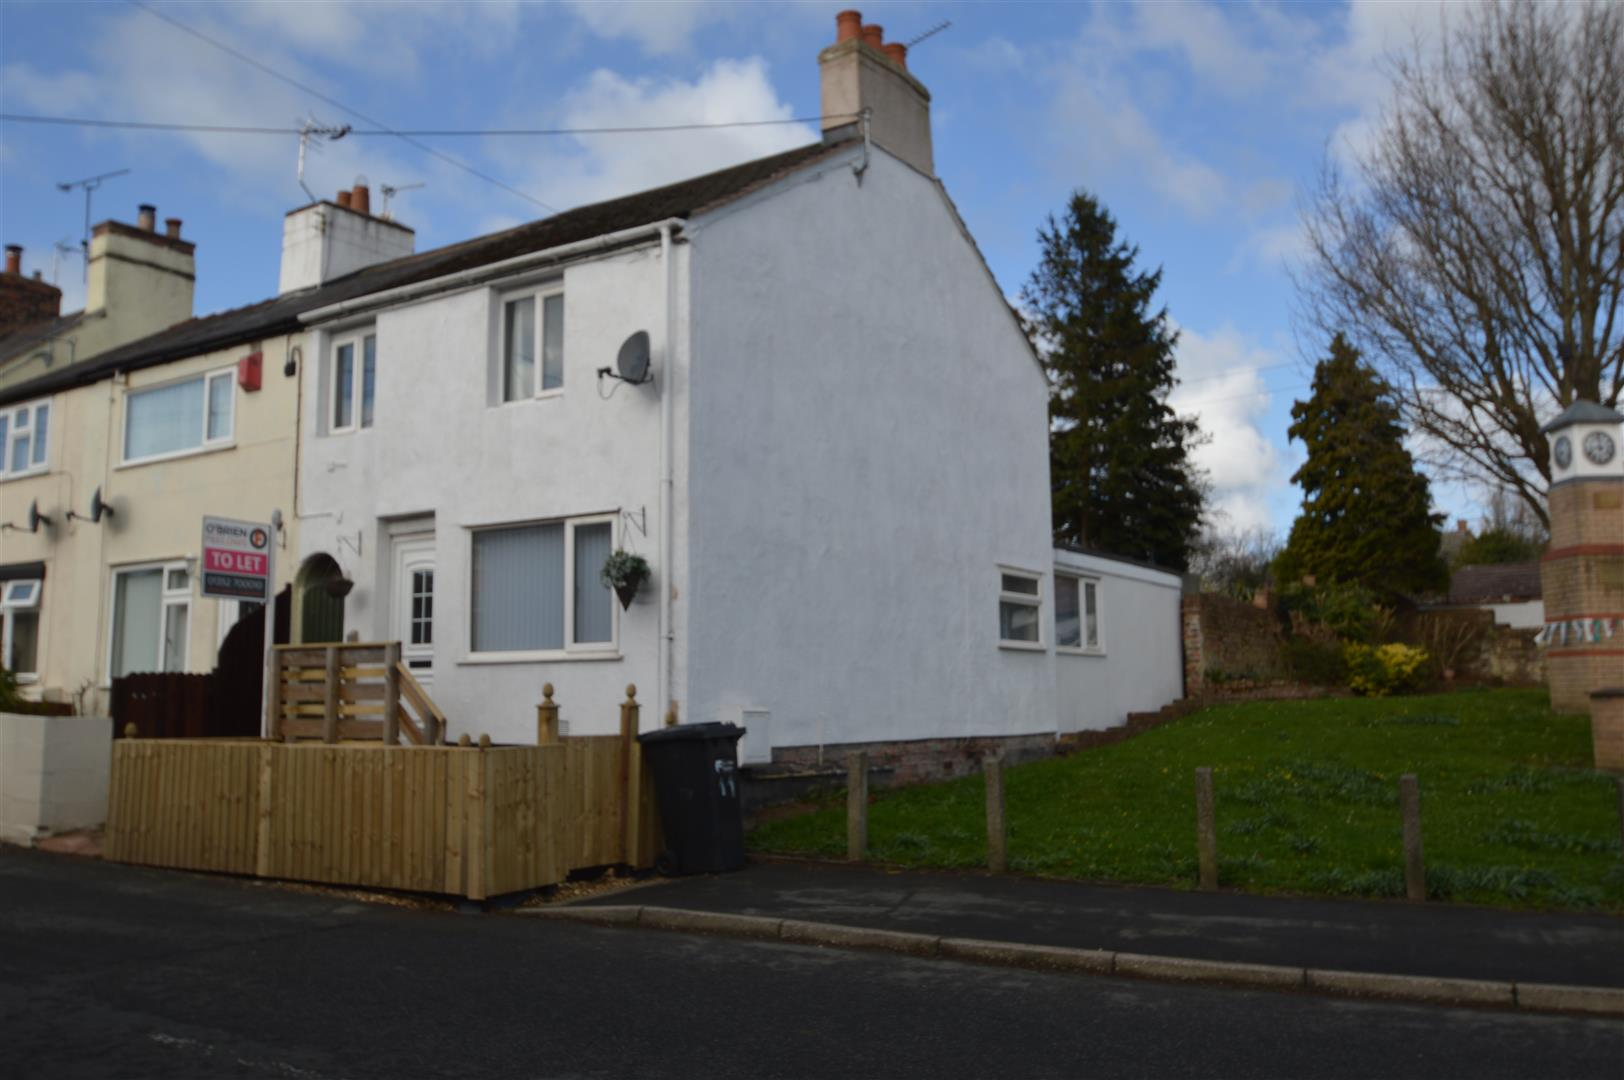 2 Bedroom Detached House, Eaton Place, Mold